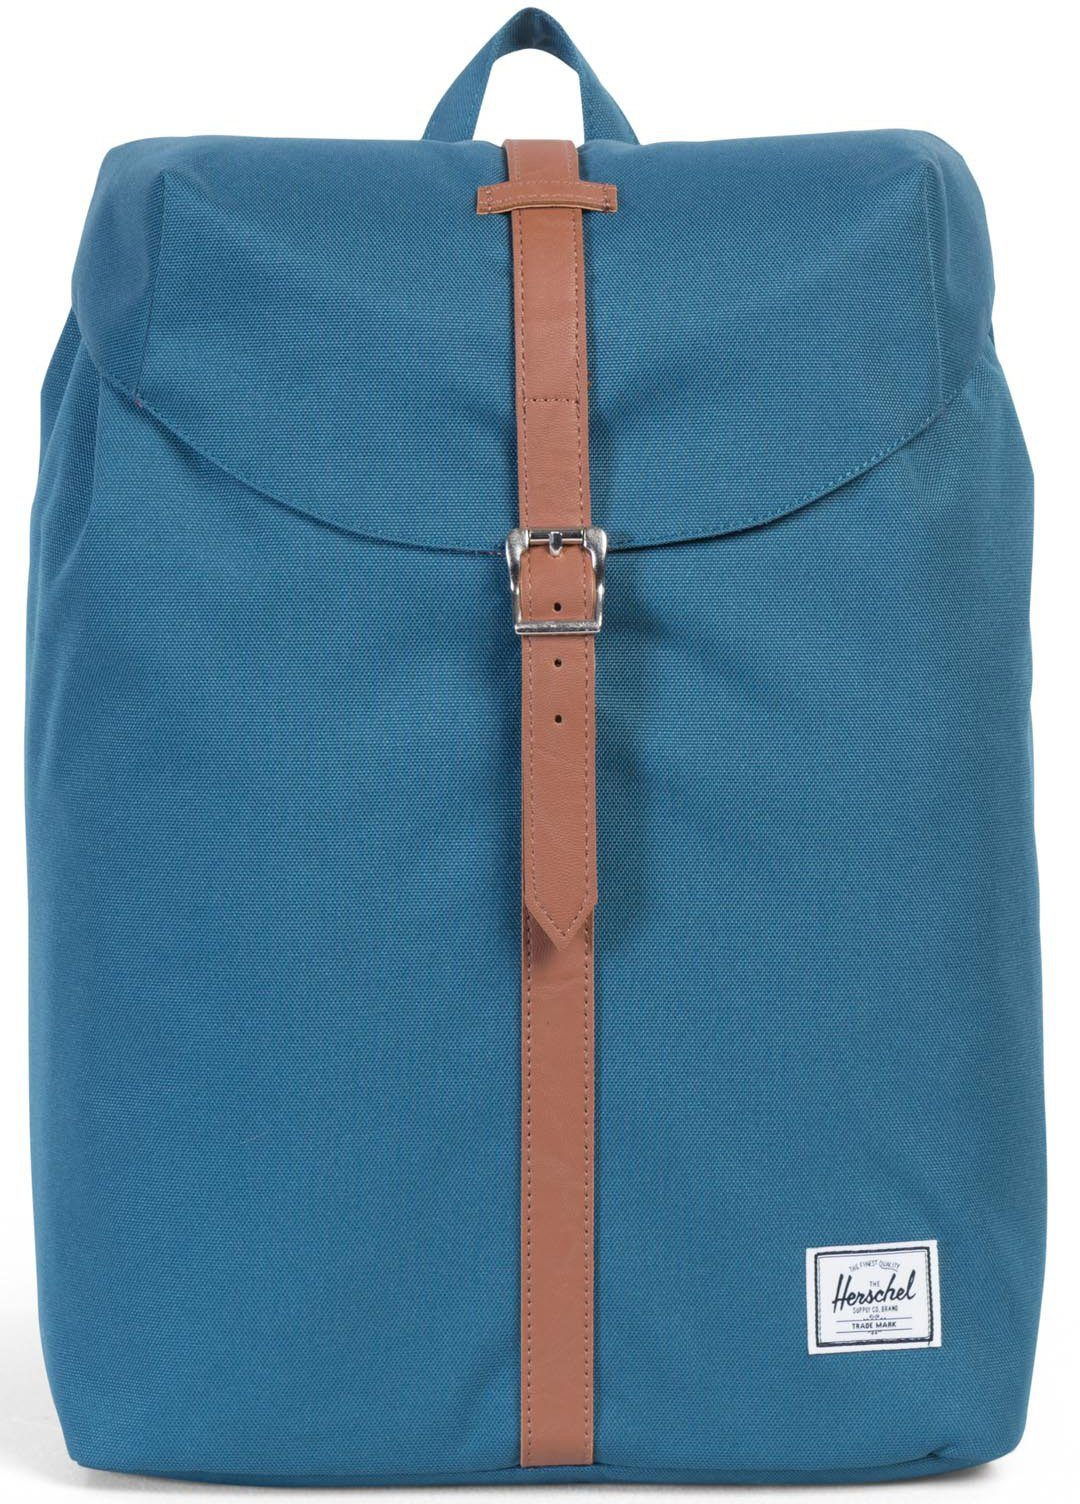 Herschel Rucksack mit Laptopfach, »Post Backpack, Indian Teal, Mid Volume«